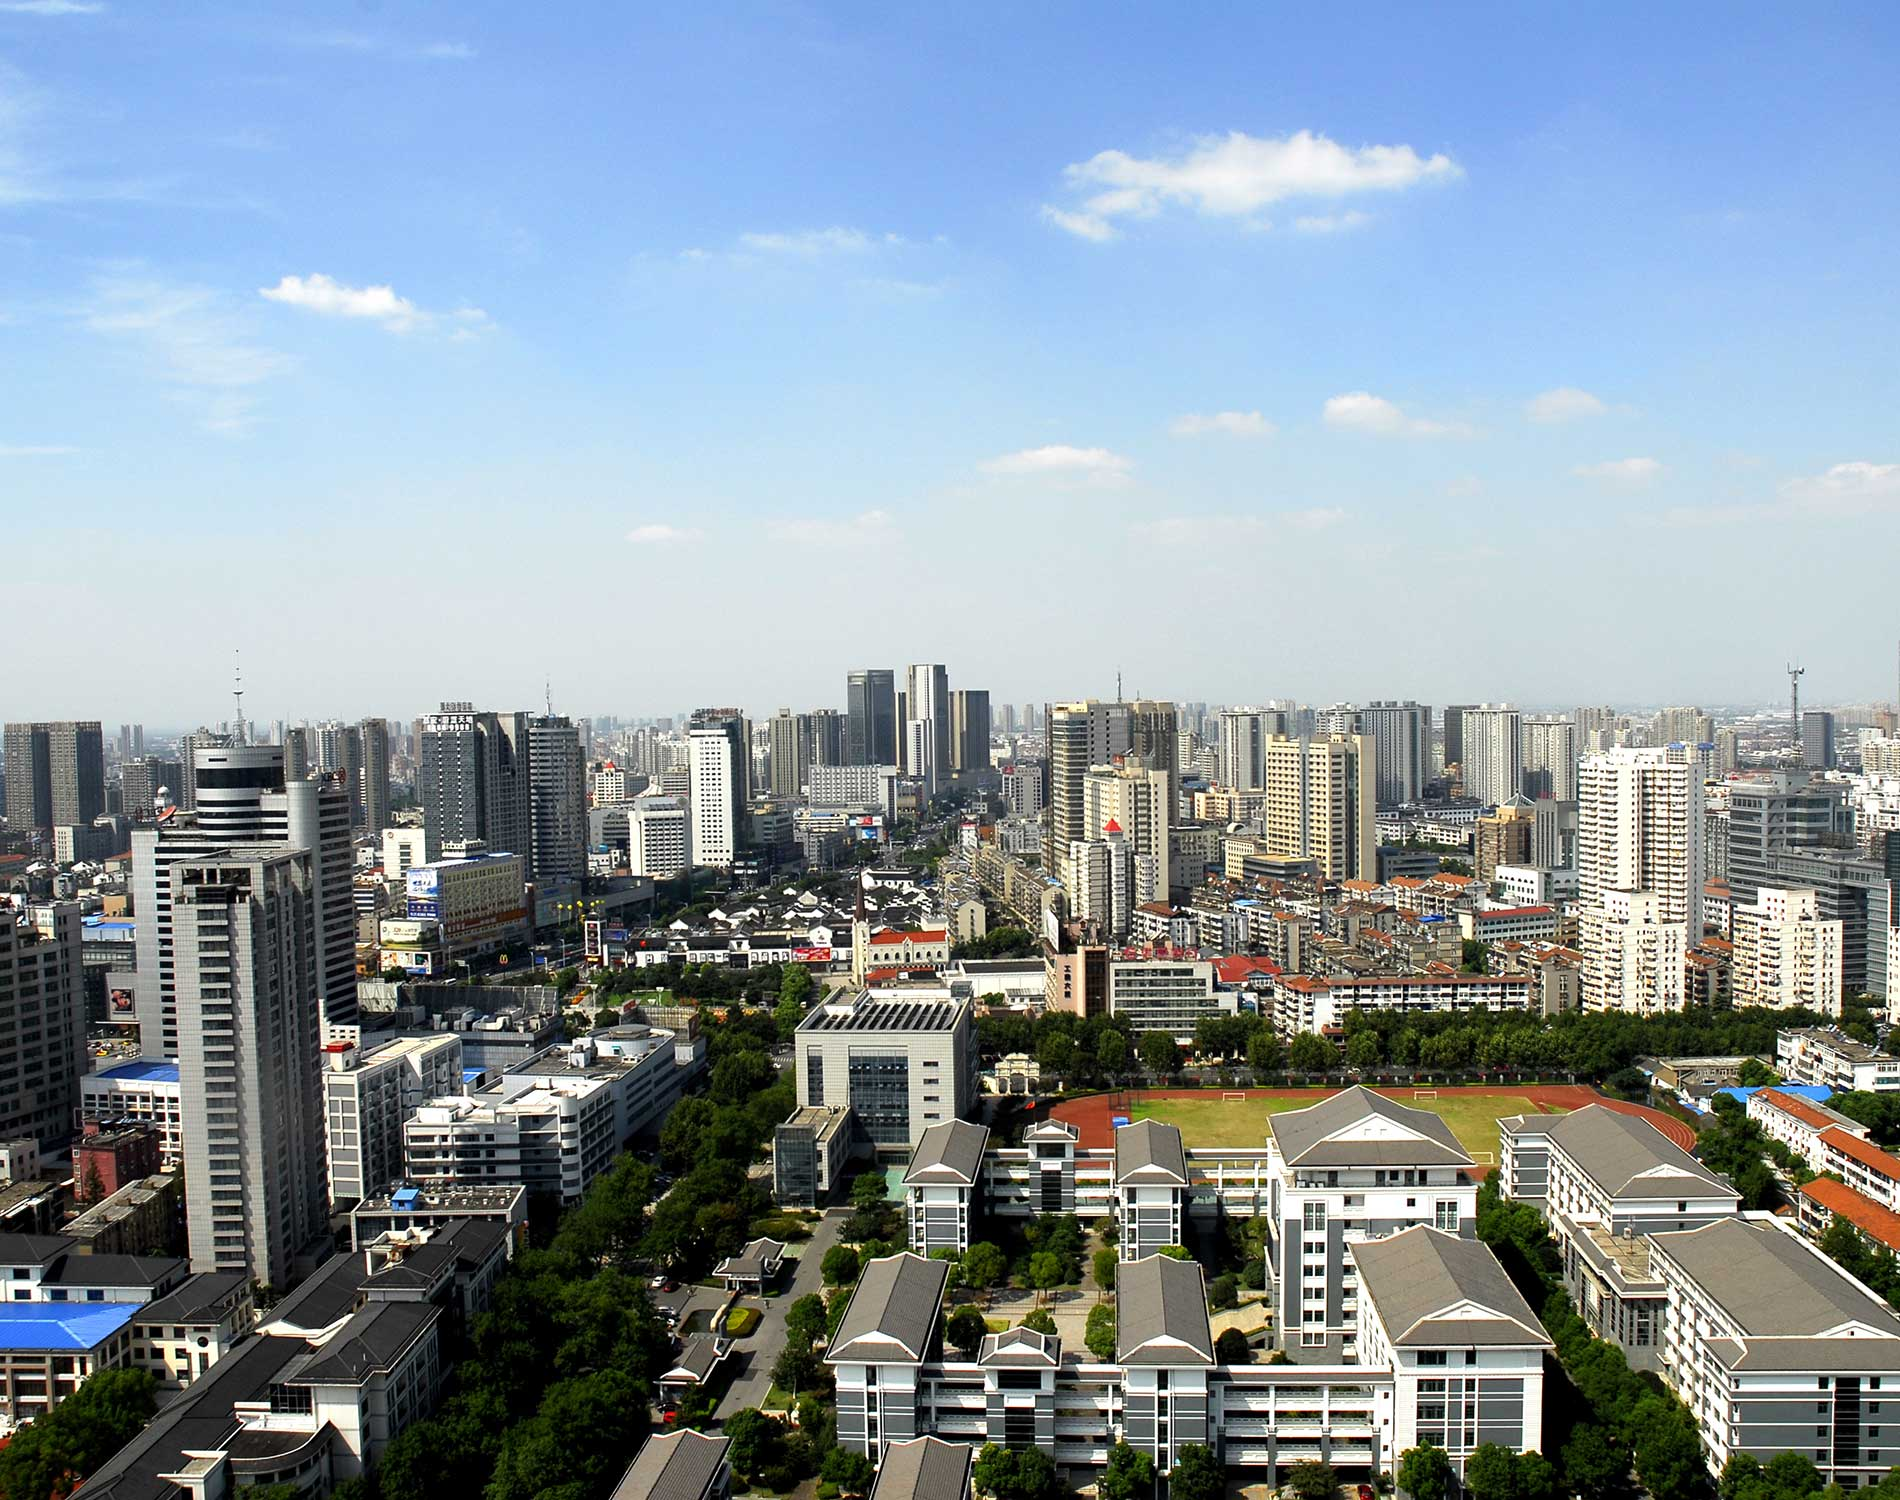 /~/media/Images/Website/Background%20Images/Offices/Changzhou/Changzhou_City_1900x1500px.ashx